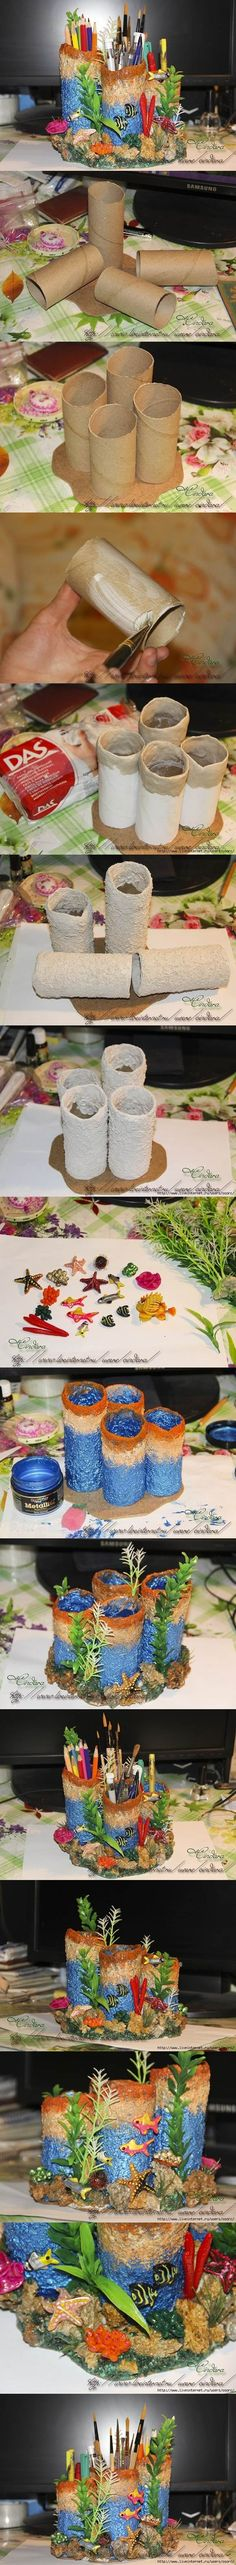 DIY Coral Reef Pencil Holder from Toilet Paper Rolls | iCreativeIdeas.com Follow Us on Facebook --> www.facebook.com/...